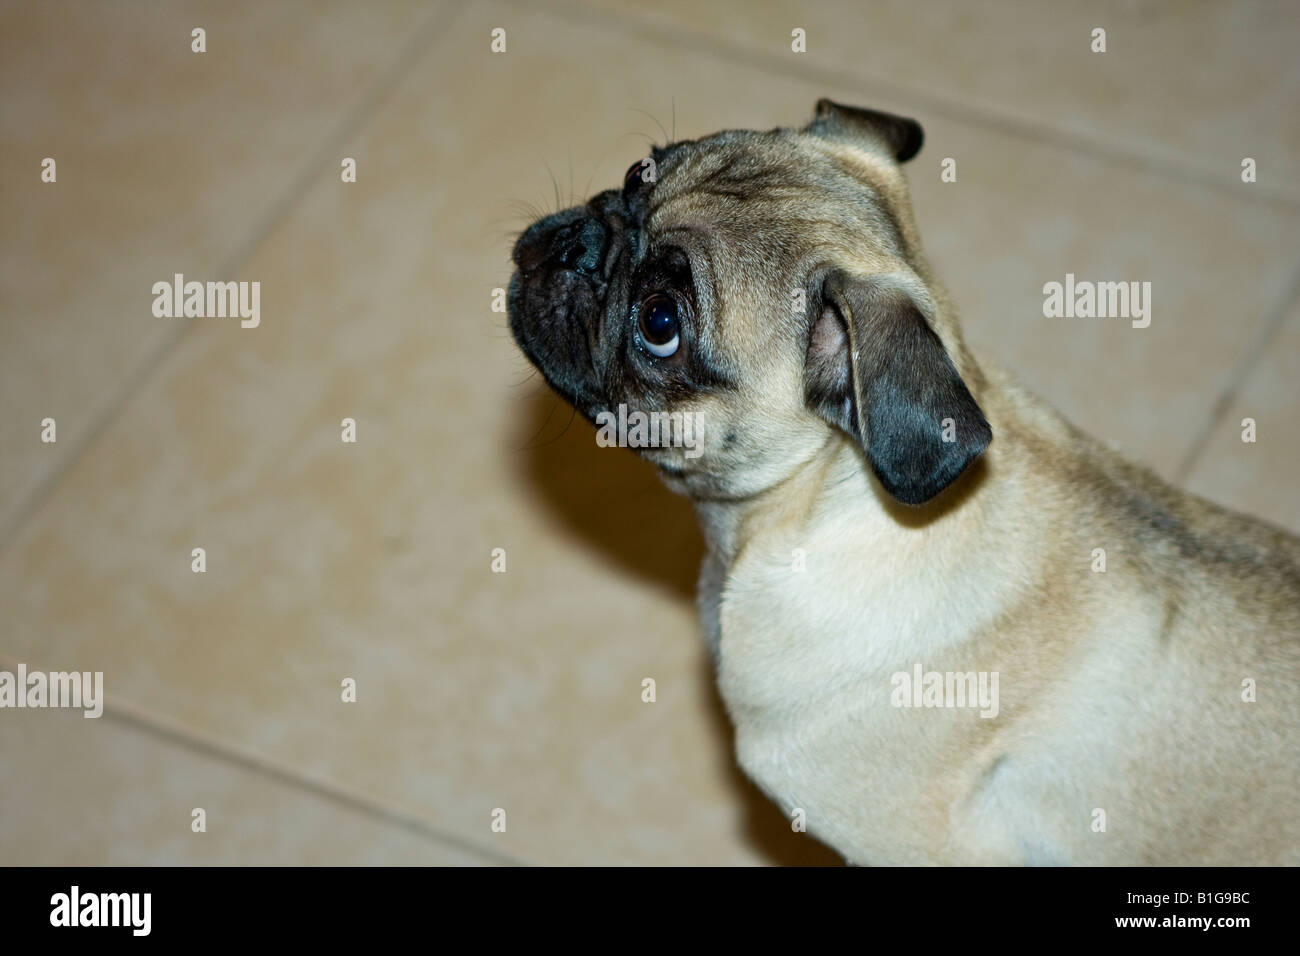 Pug Dog Portraits - Stock Image